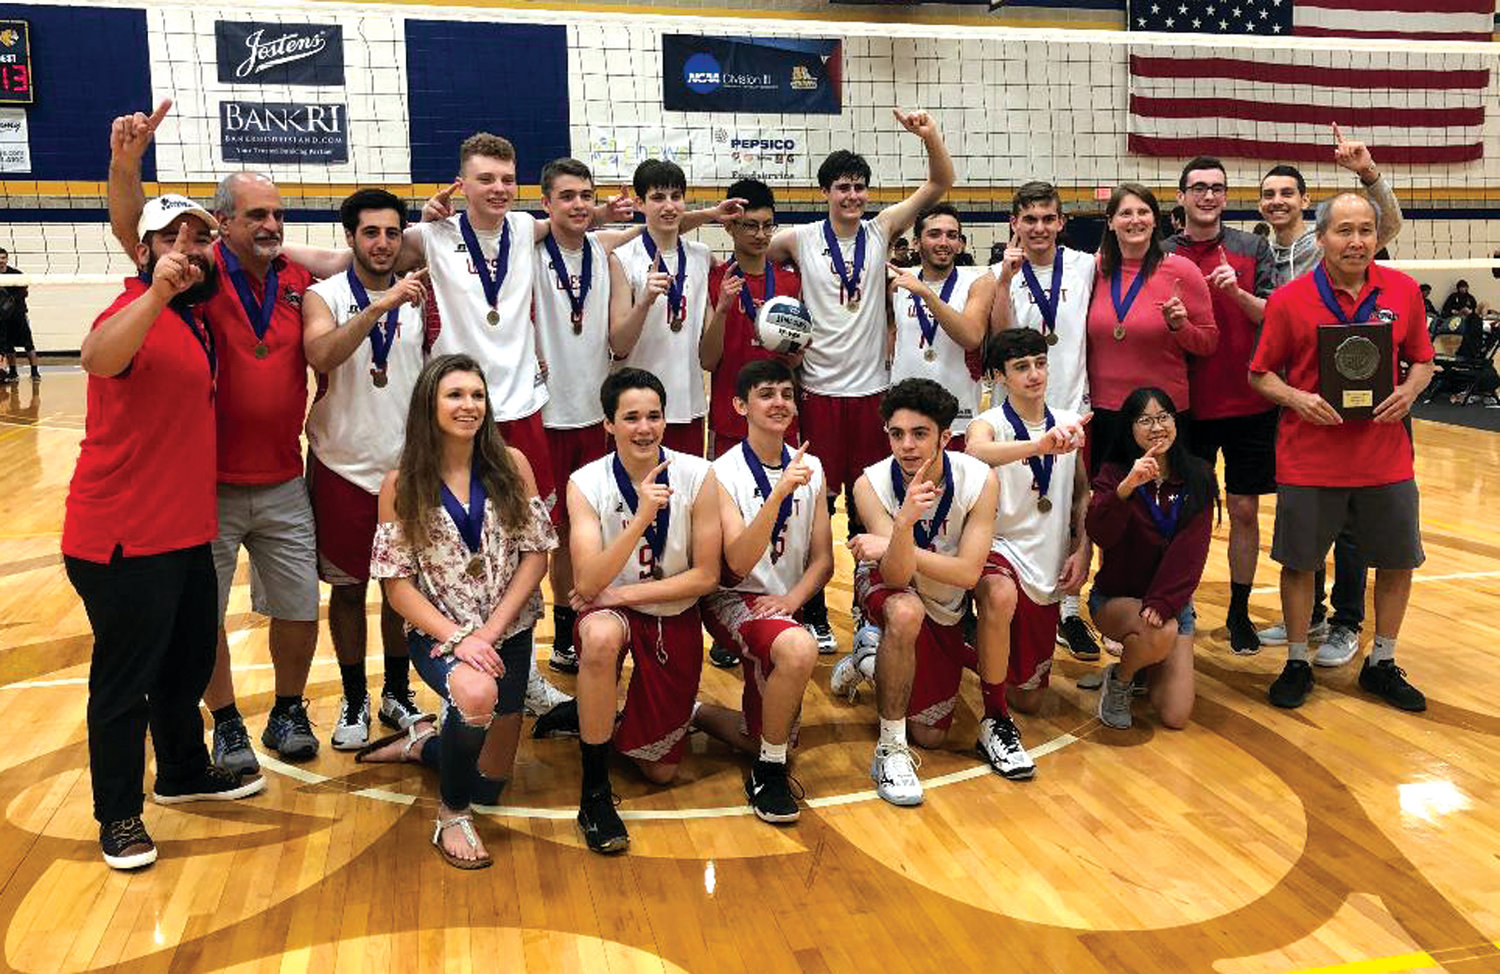 STATE CHAMPS: The 2019 Cranston West boys volleyball team celebrates after winning the Division II State Championship over reigning champion East Greenwich on Monday night at Johnson and Wales University in Providence. The Falcons won 3-0, by scores of 25-15, 25-19, 25-13 for their first state title since the 2016 season.